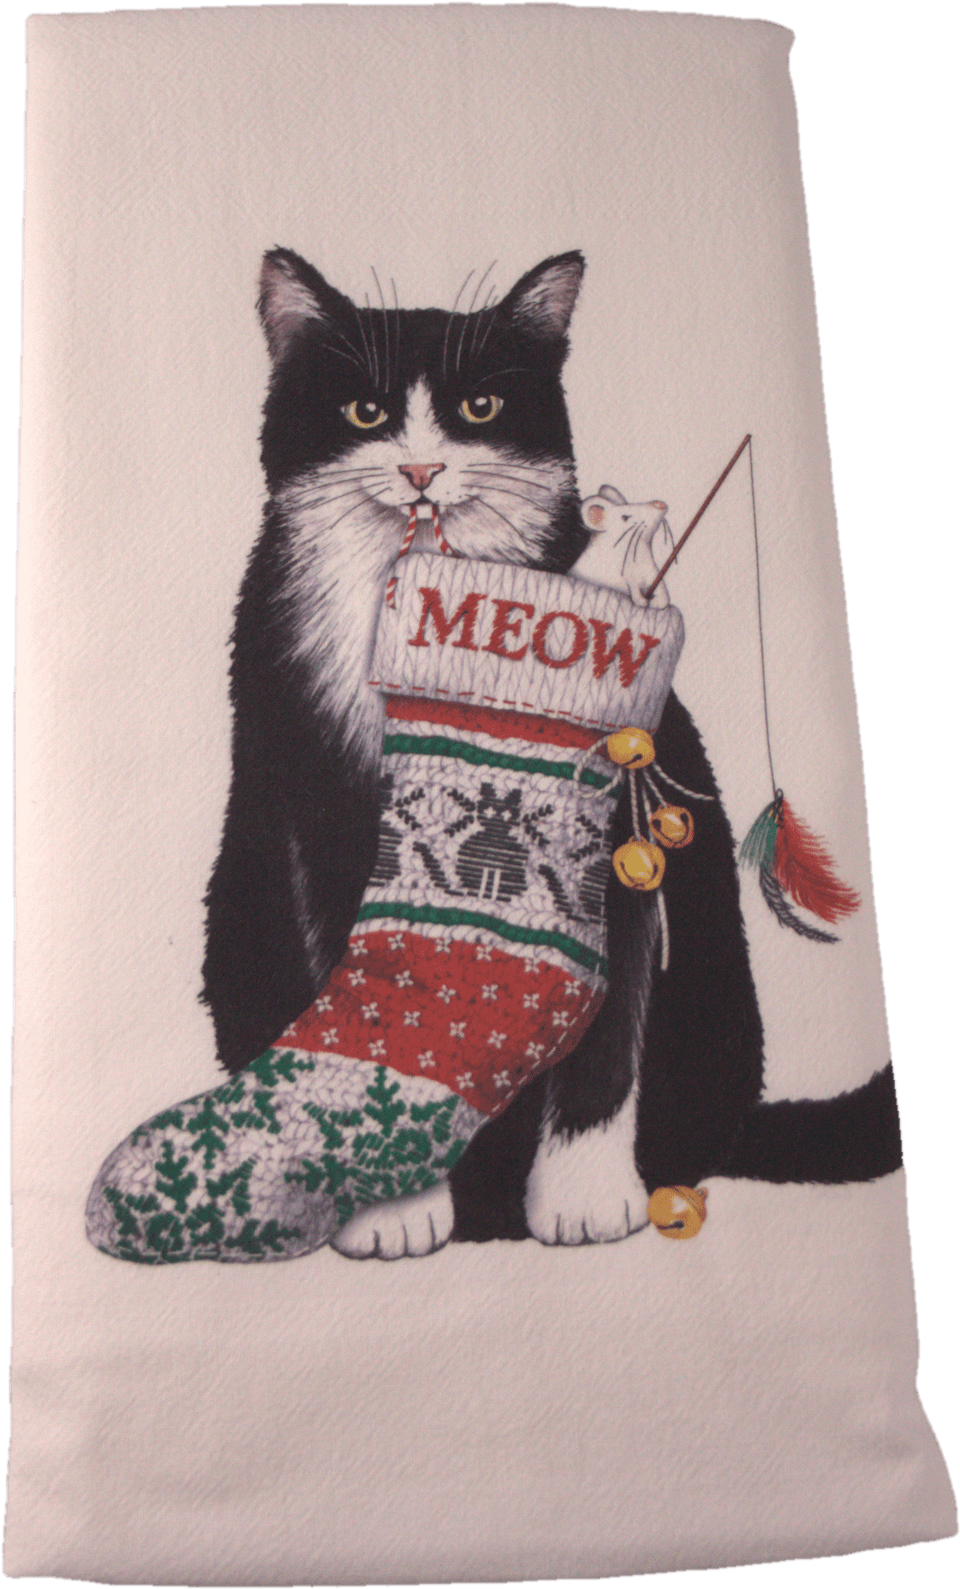 Tuxedo Cat Christmas Flour Sack Dish Towel - Domestic Short-haired Cat (1001x1622), Png Download